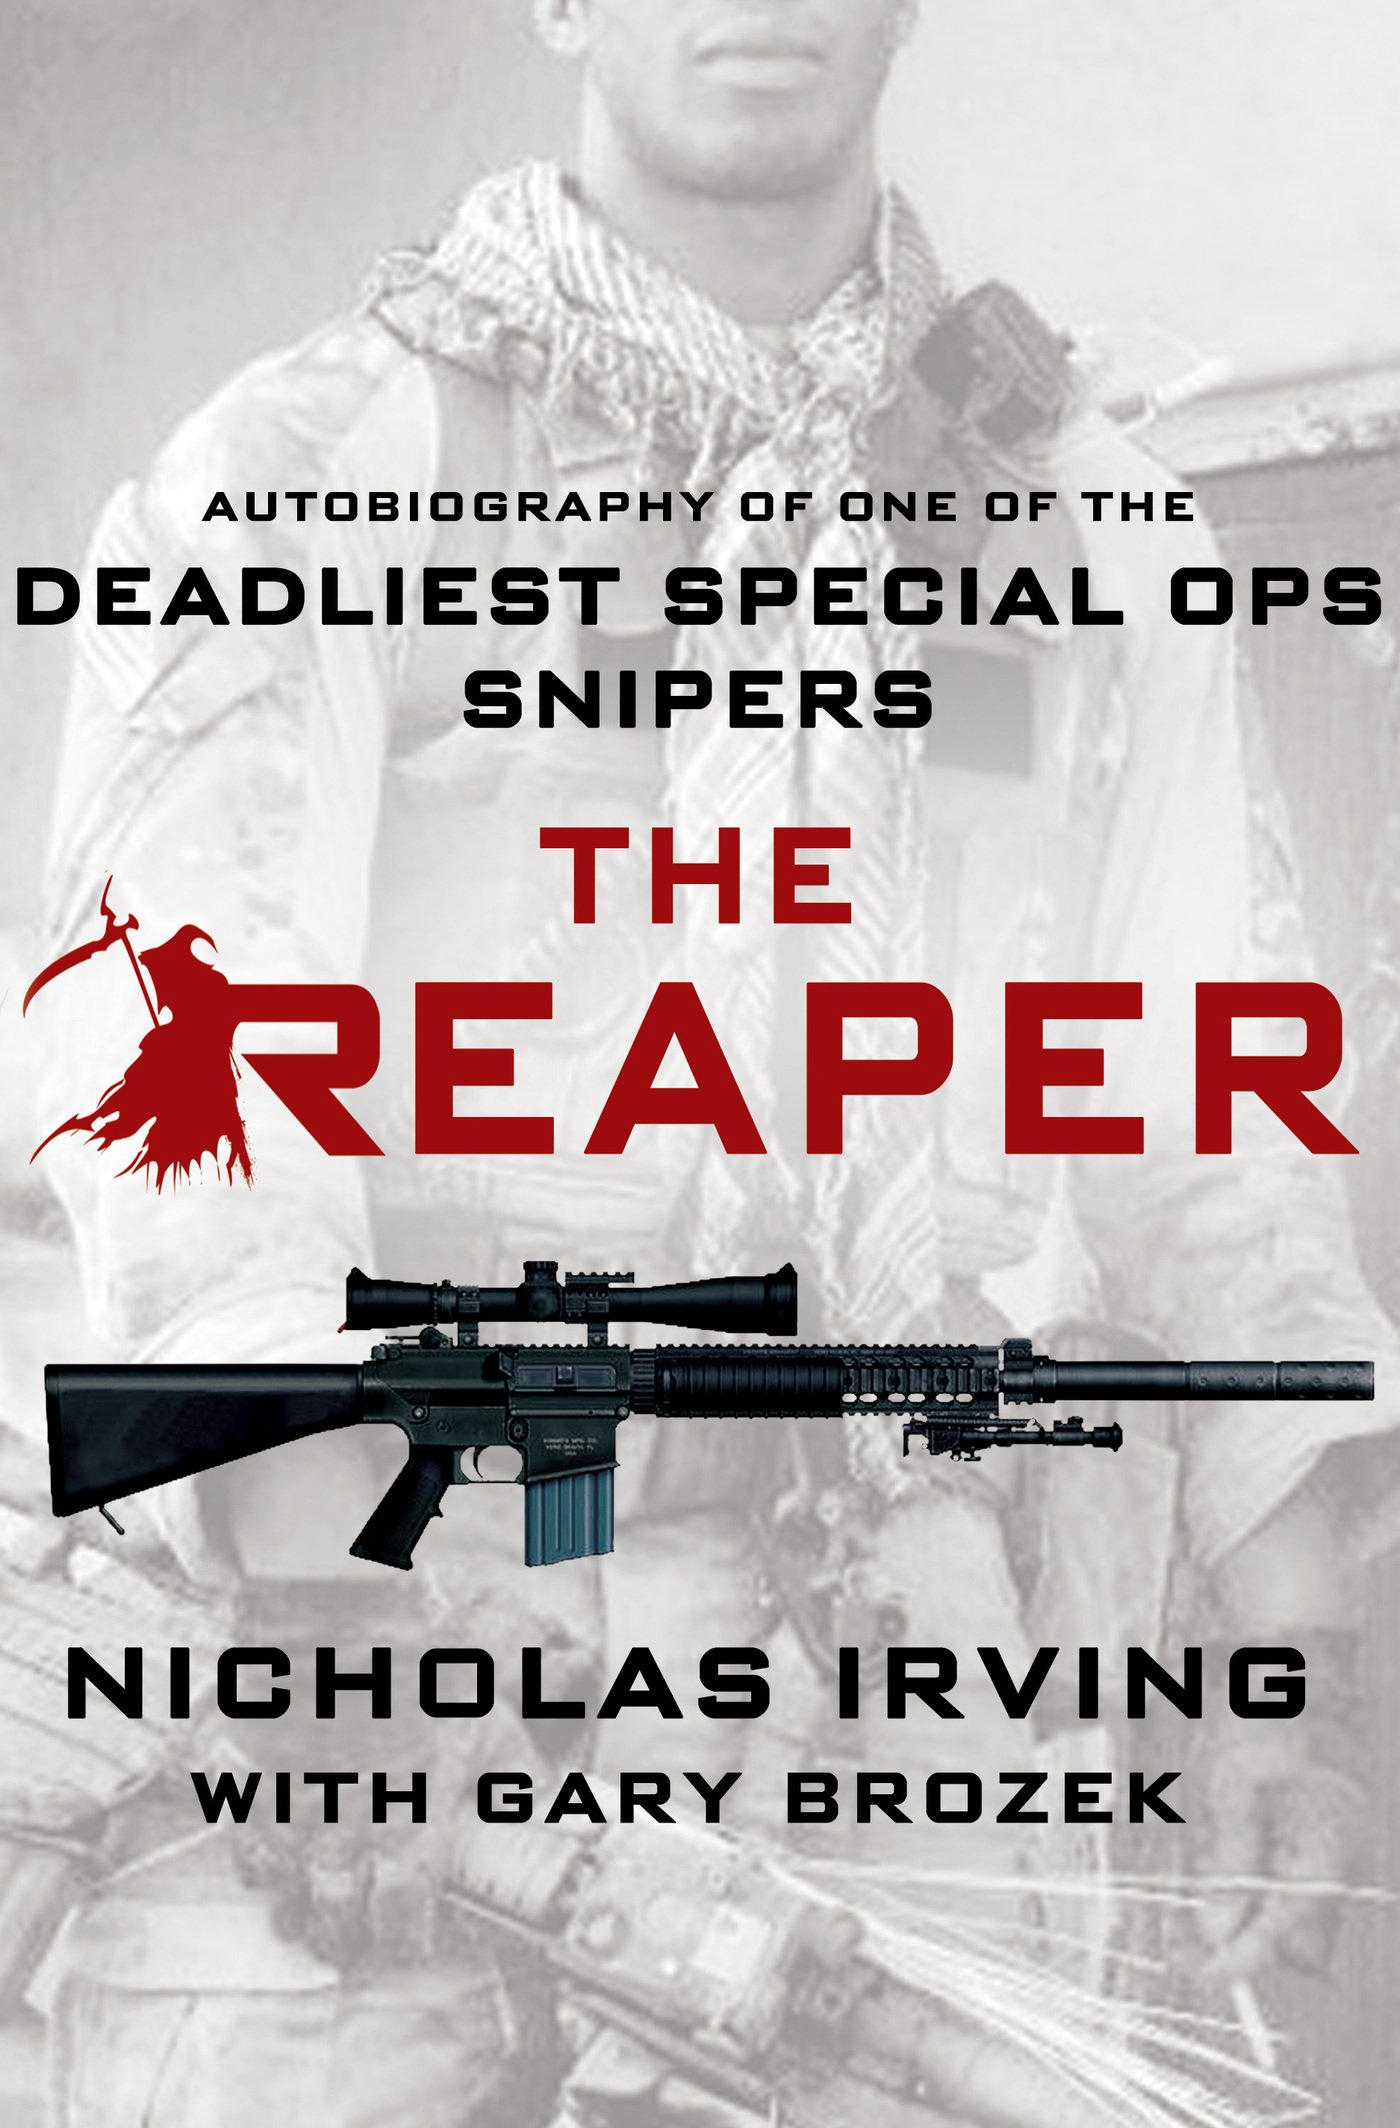 635603706597146317-OFF-The-Reaper